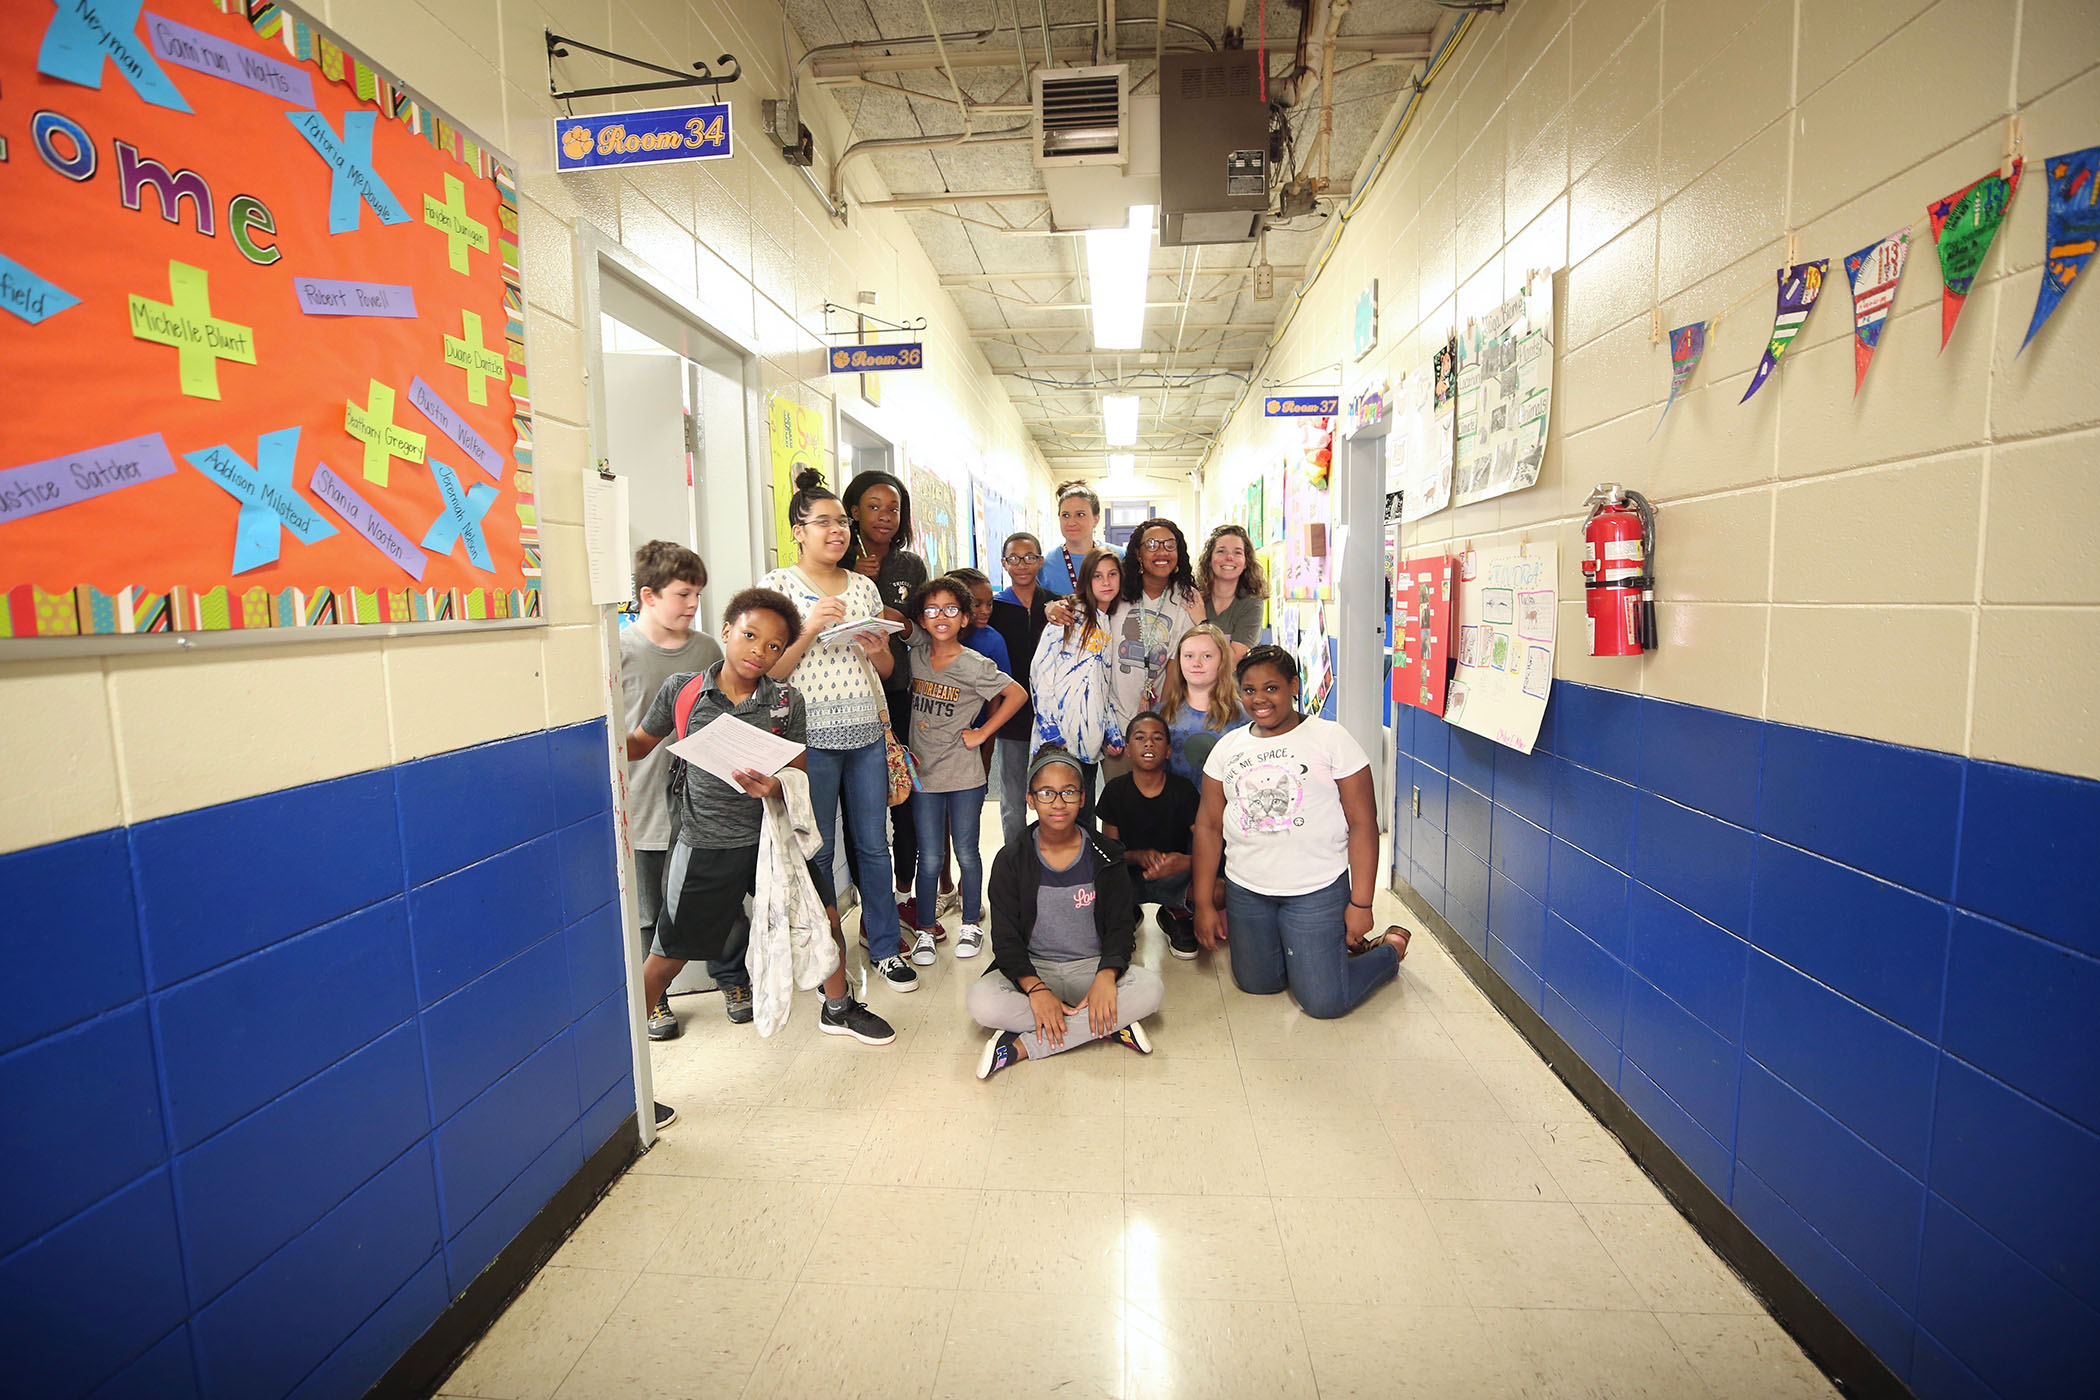 QUE students pose in the hallway with their teachers.